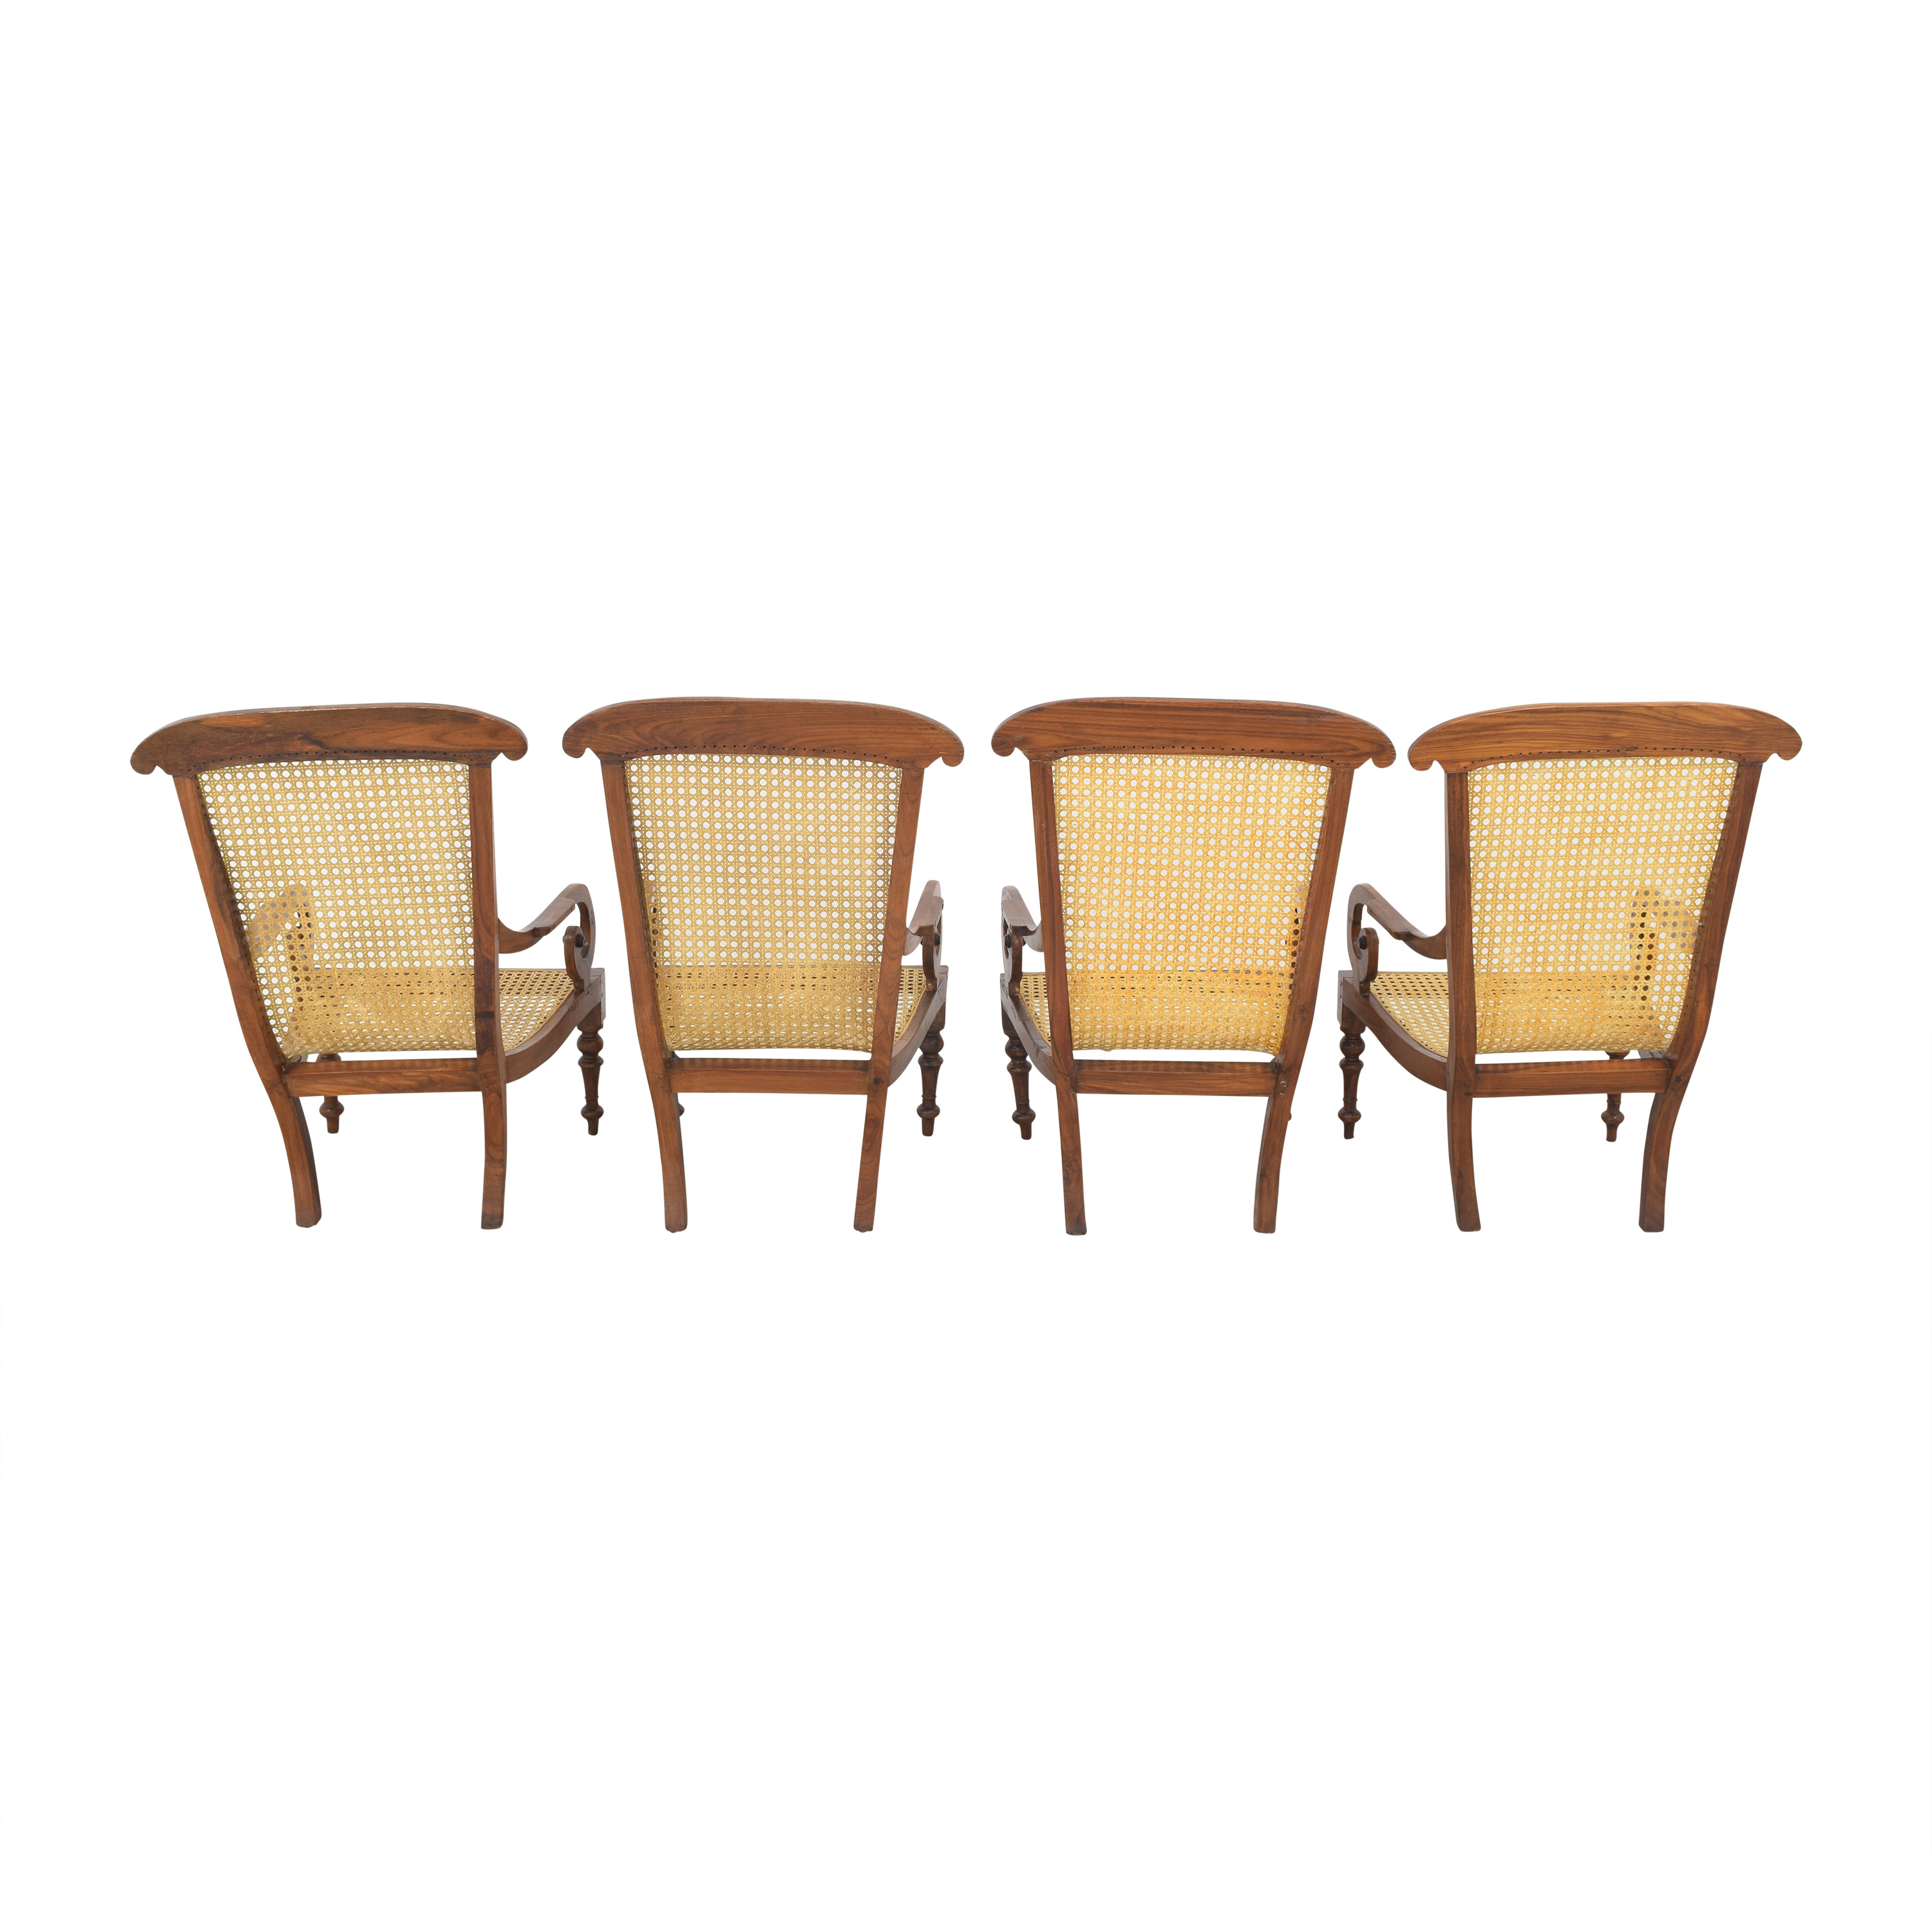 Vintage Carved Colonial-Style Chairs discount